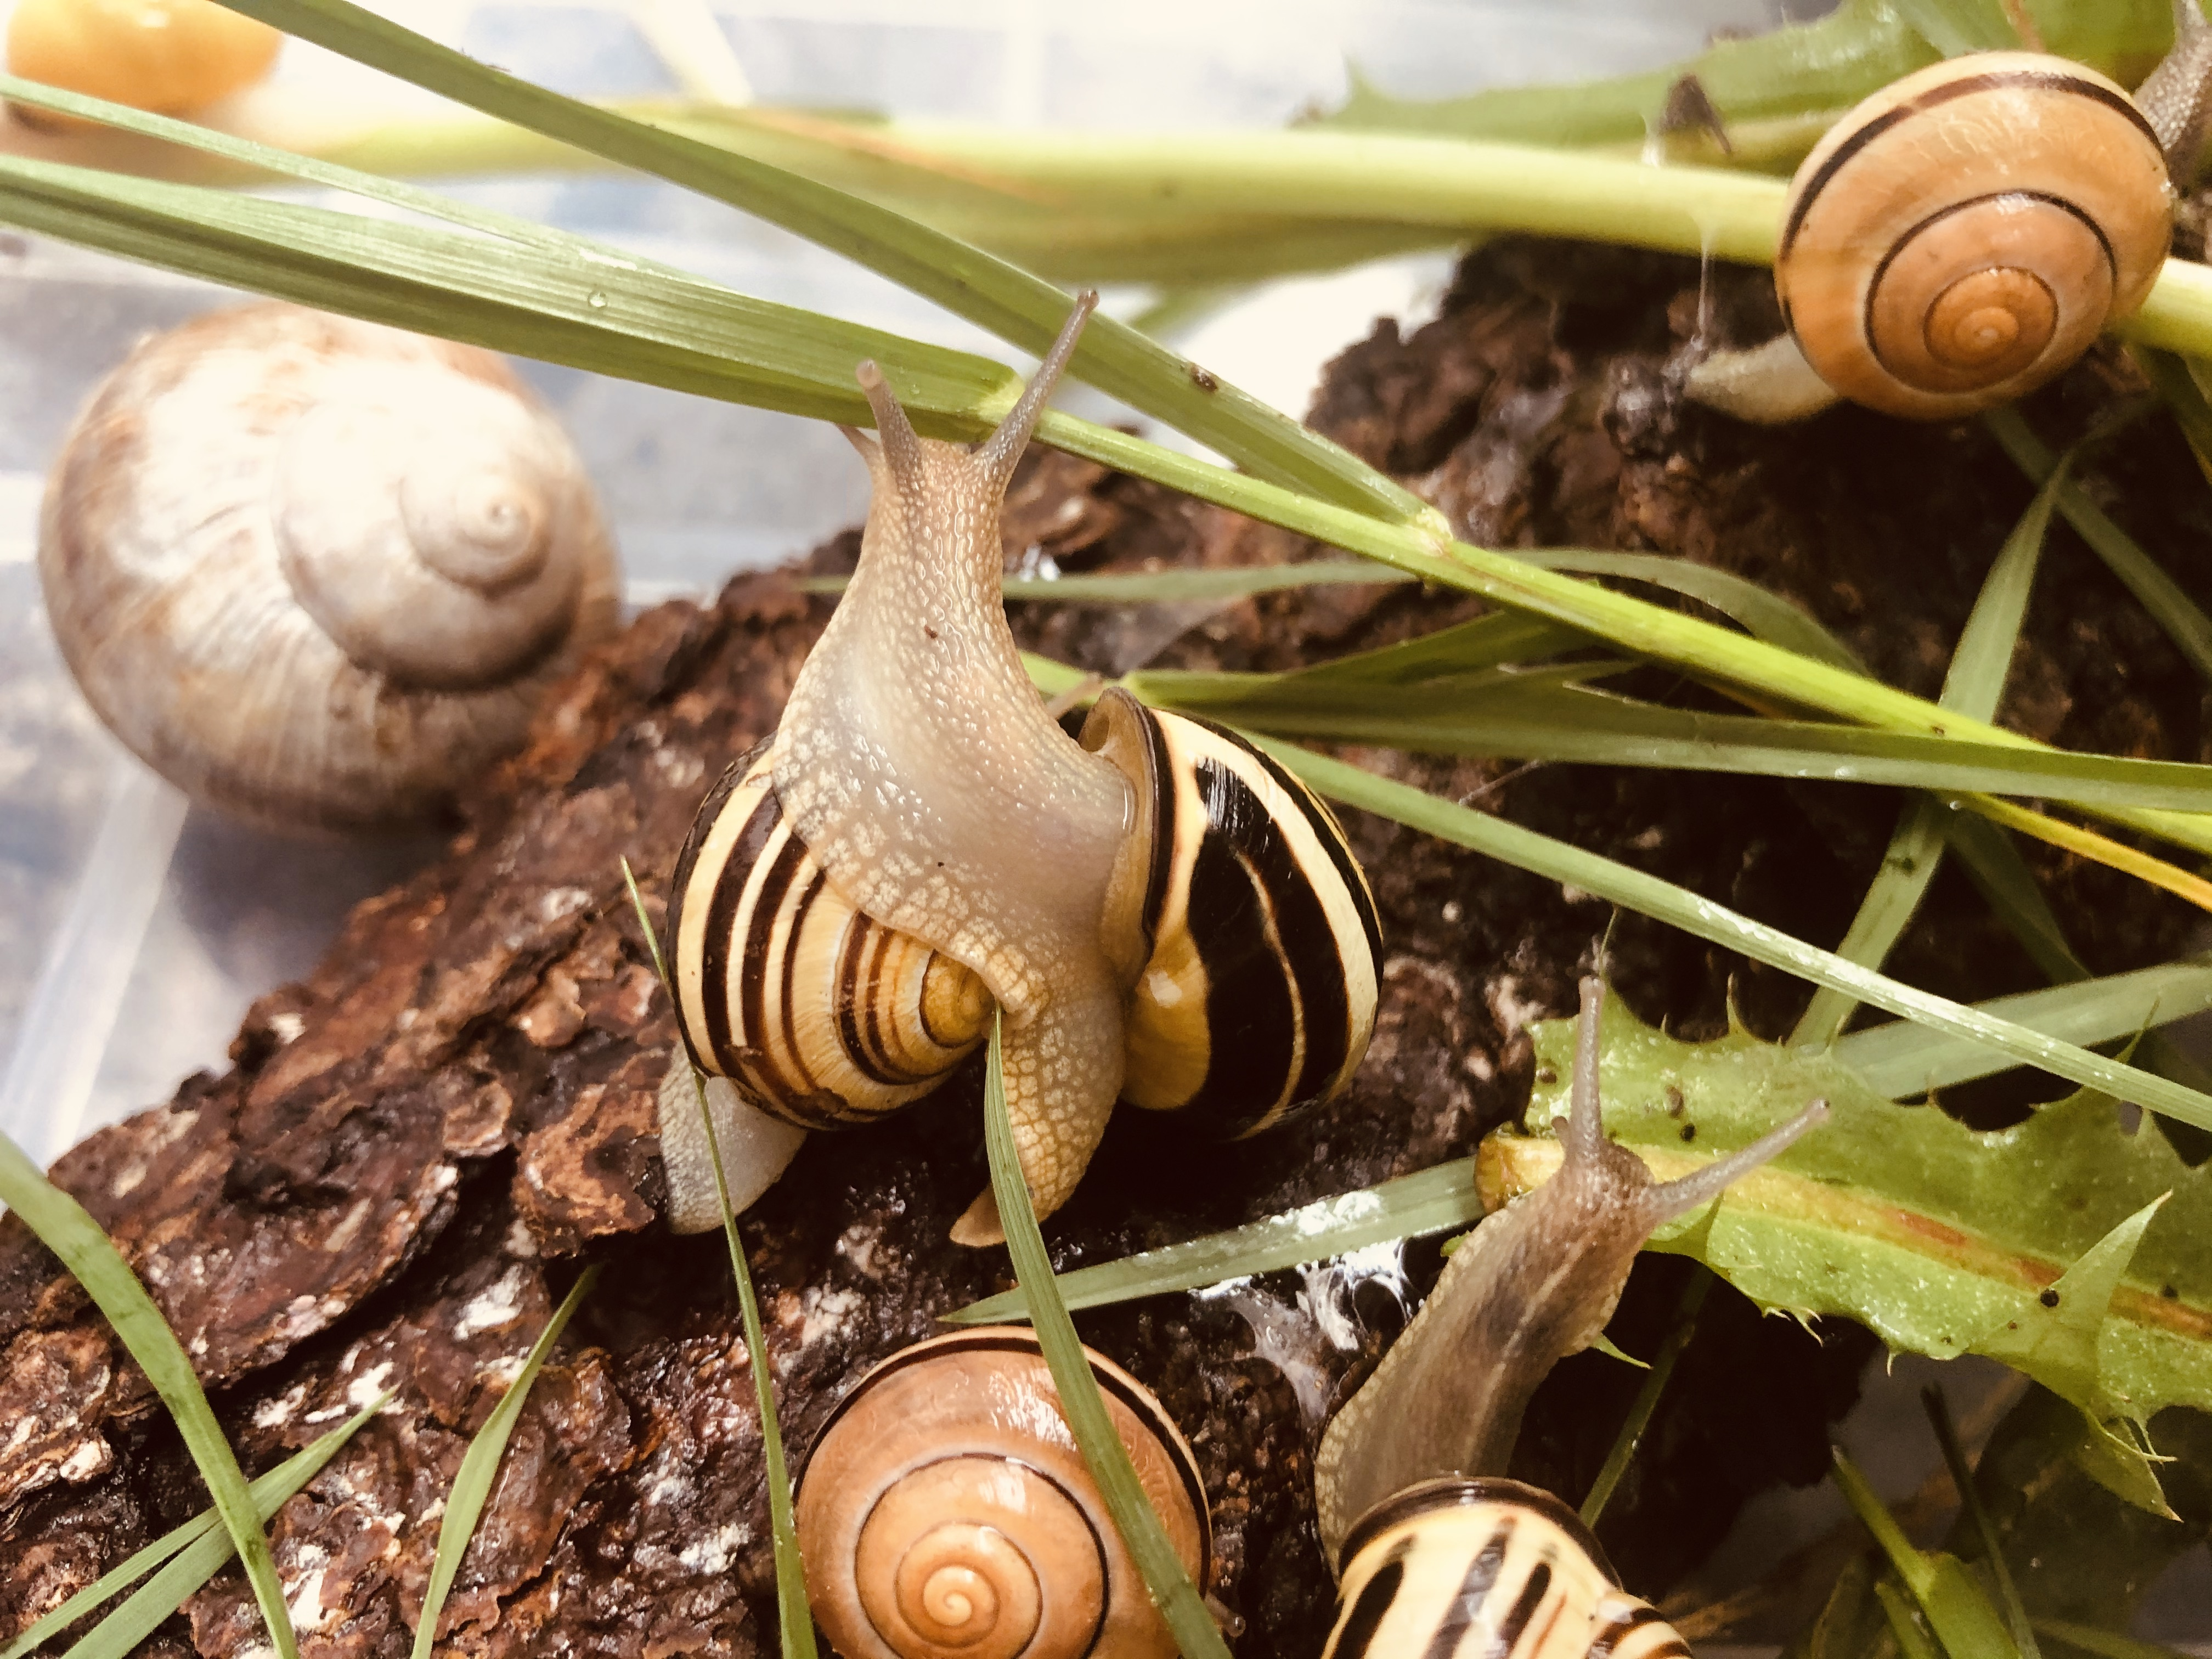 Snails in a box